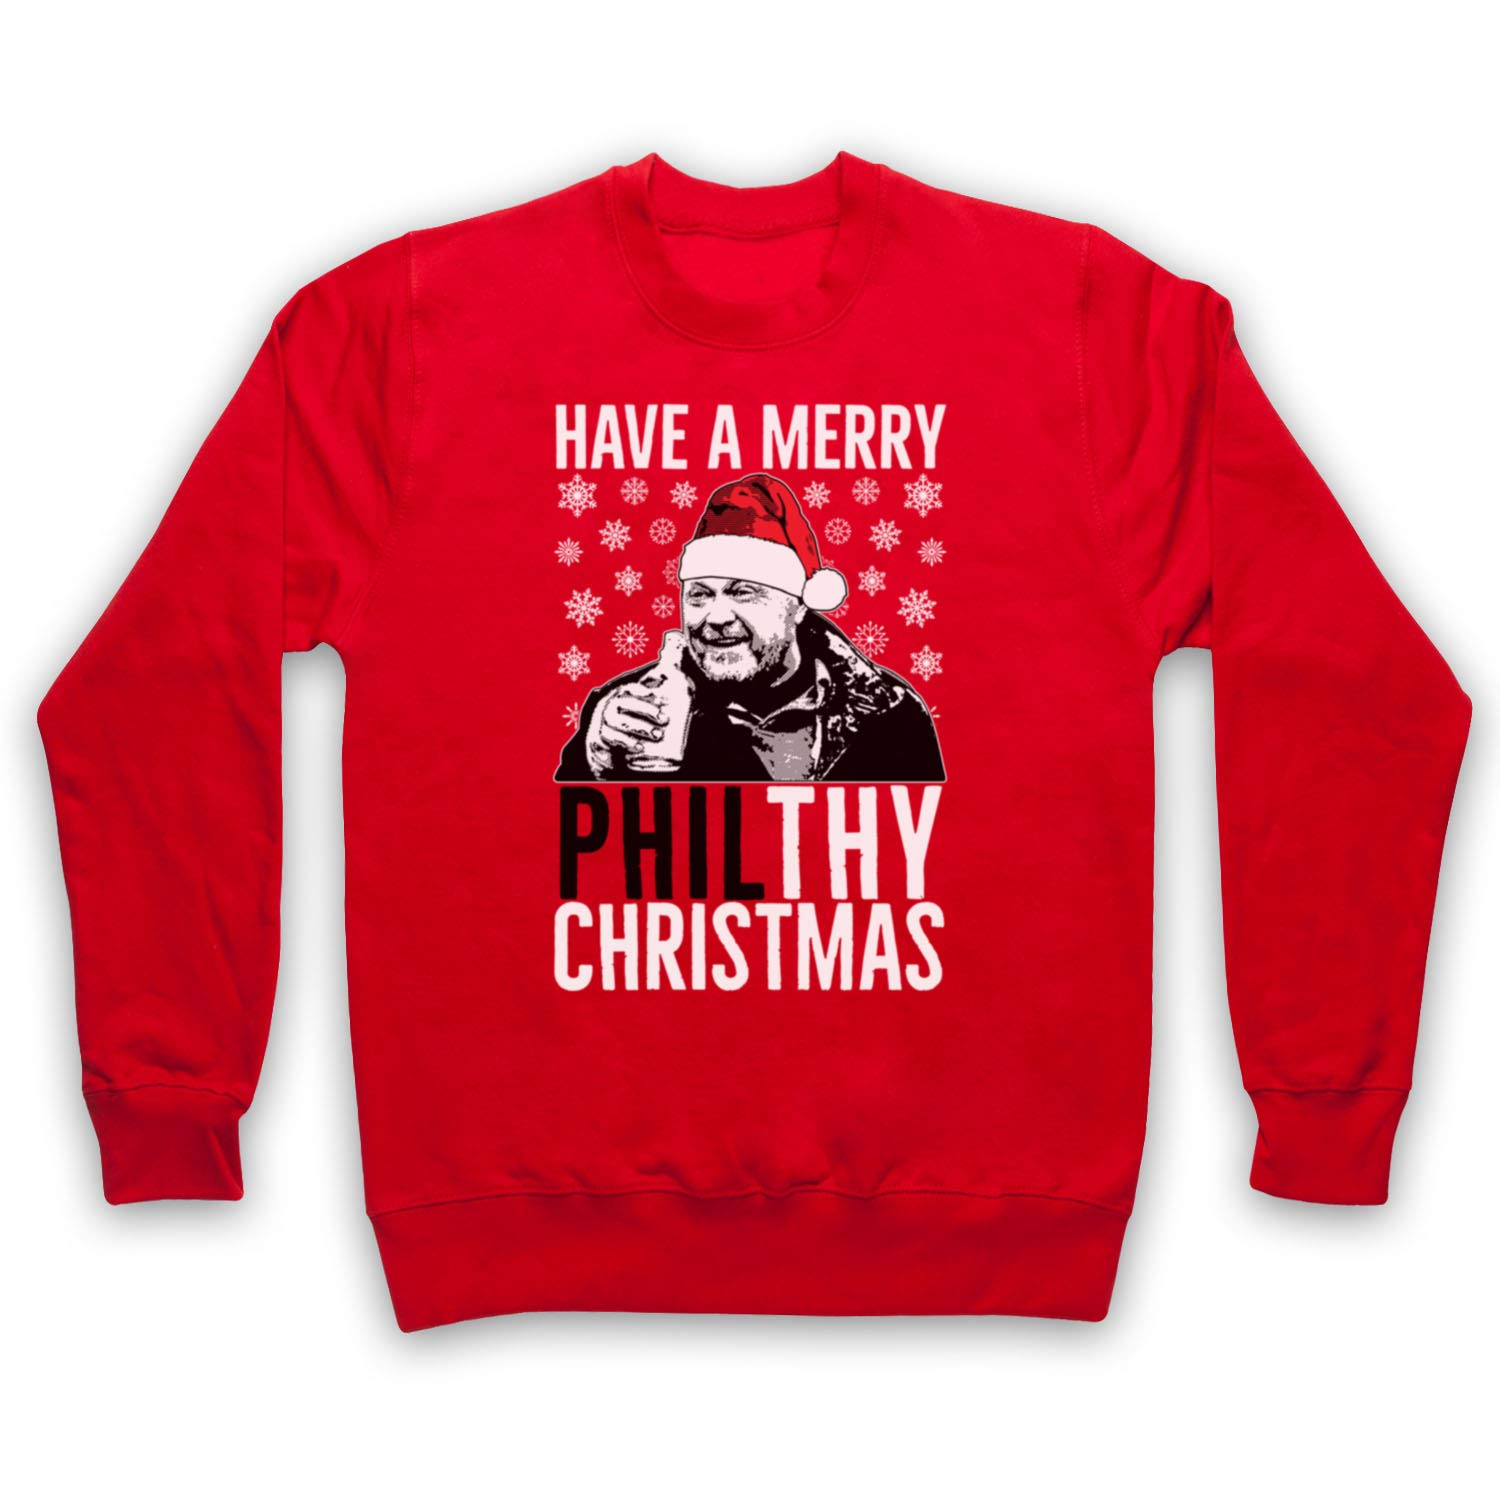 EASTENDERS PHIL MITCHELL UNOFFICIAL MERRY PHILTHY XMAS BABY GROW BABYGROW GIFT